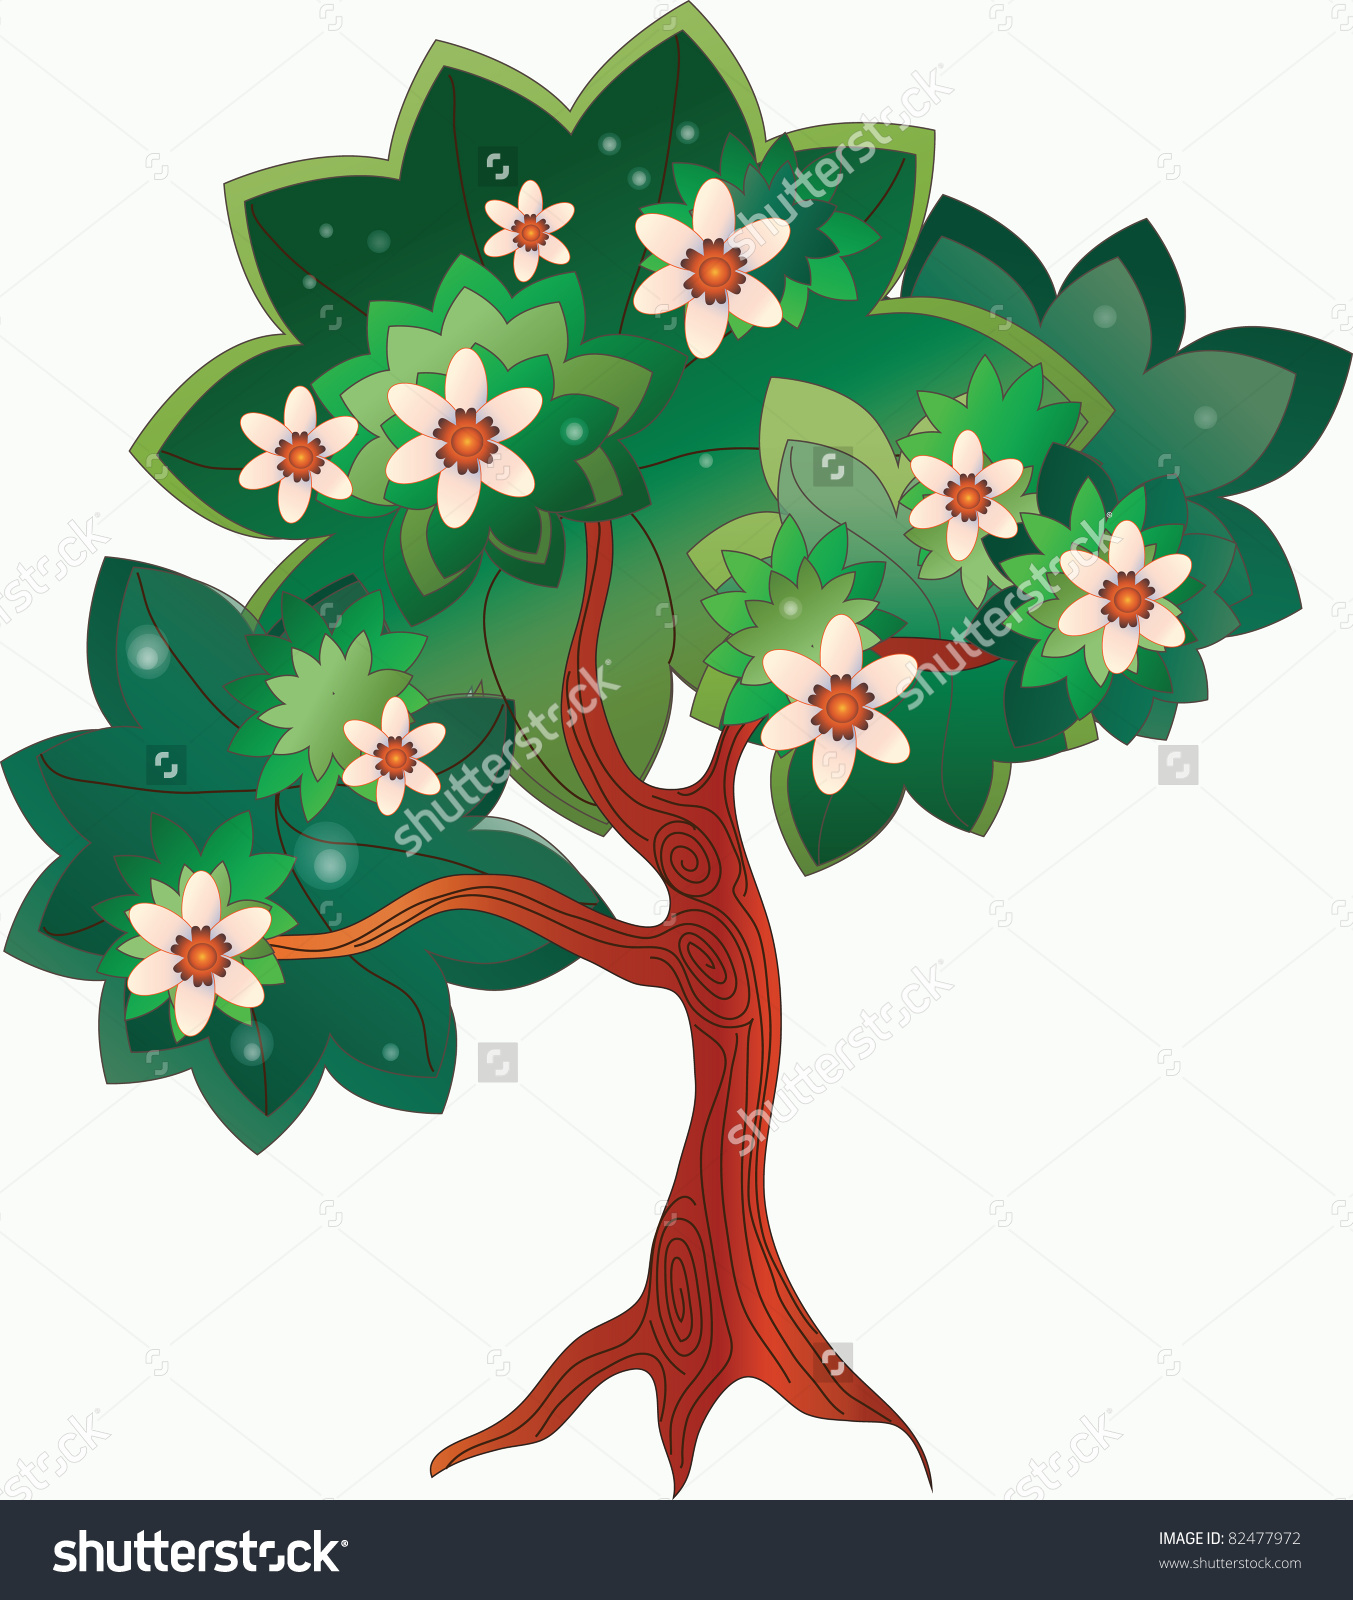 Flourishing tree clipart #1